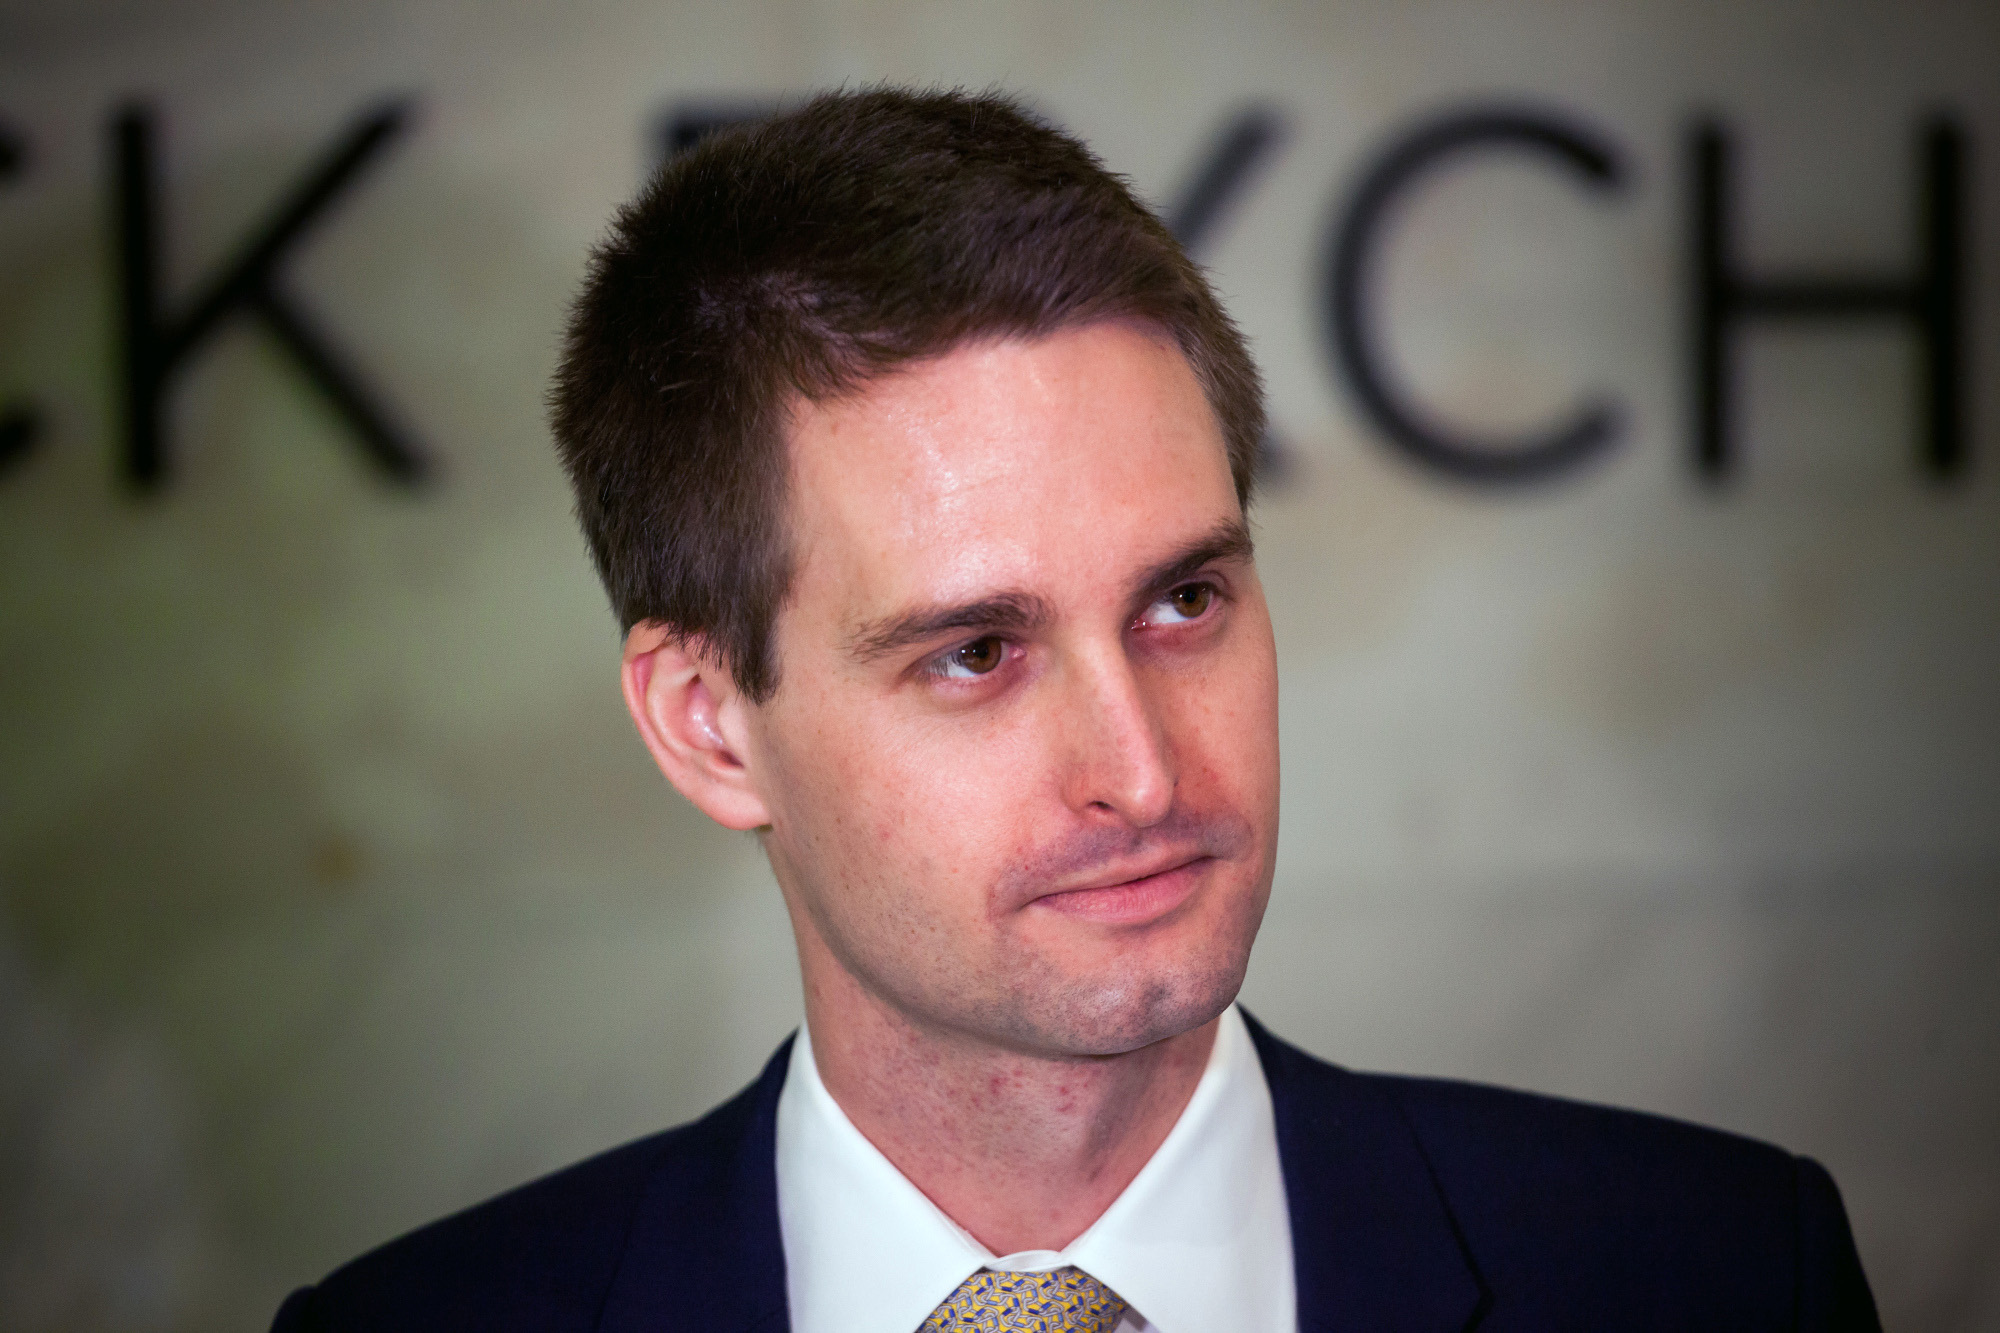 Spiegel 24 Snap Ceo Evan Spiegel Got 638 Million In Year Of Firm S Ipo New